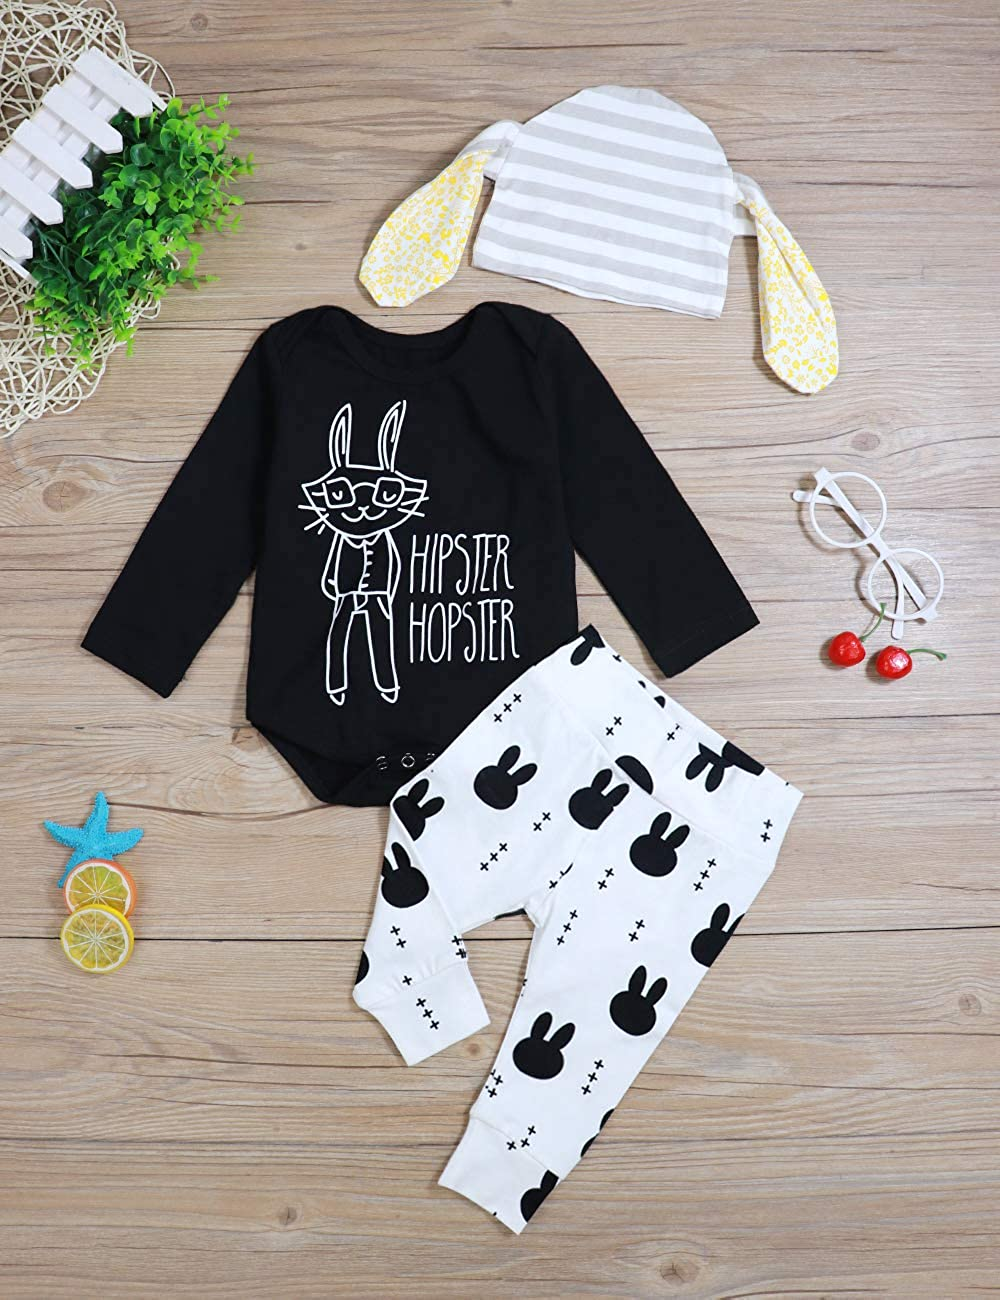 4e536e1b9ef4a Baby Boy Girl My 1st Easter Outfit Hopster Hipster Bodysuit Romper+ Bunny  Pants+Hat 3Pcs Clothes Set Black